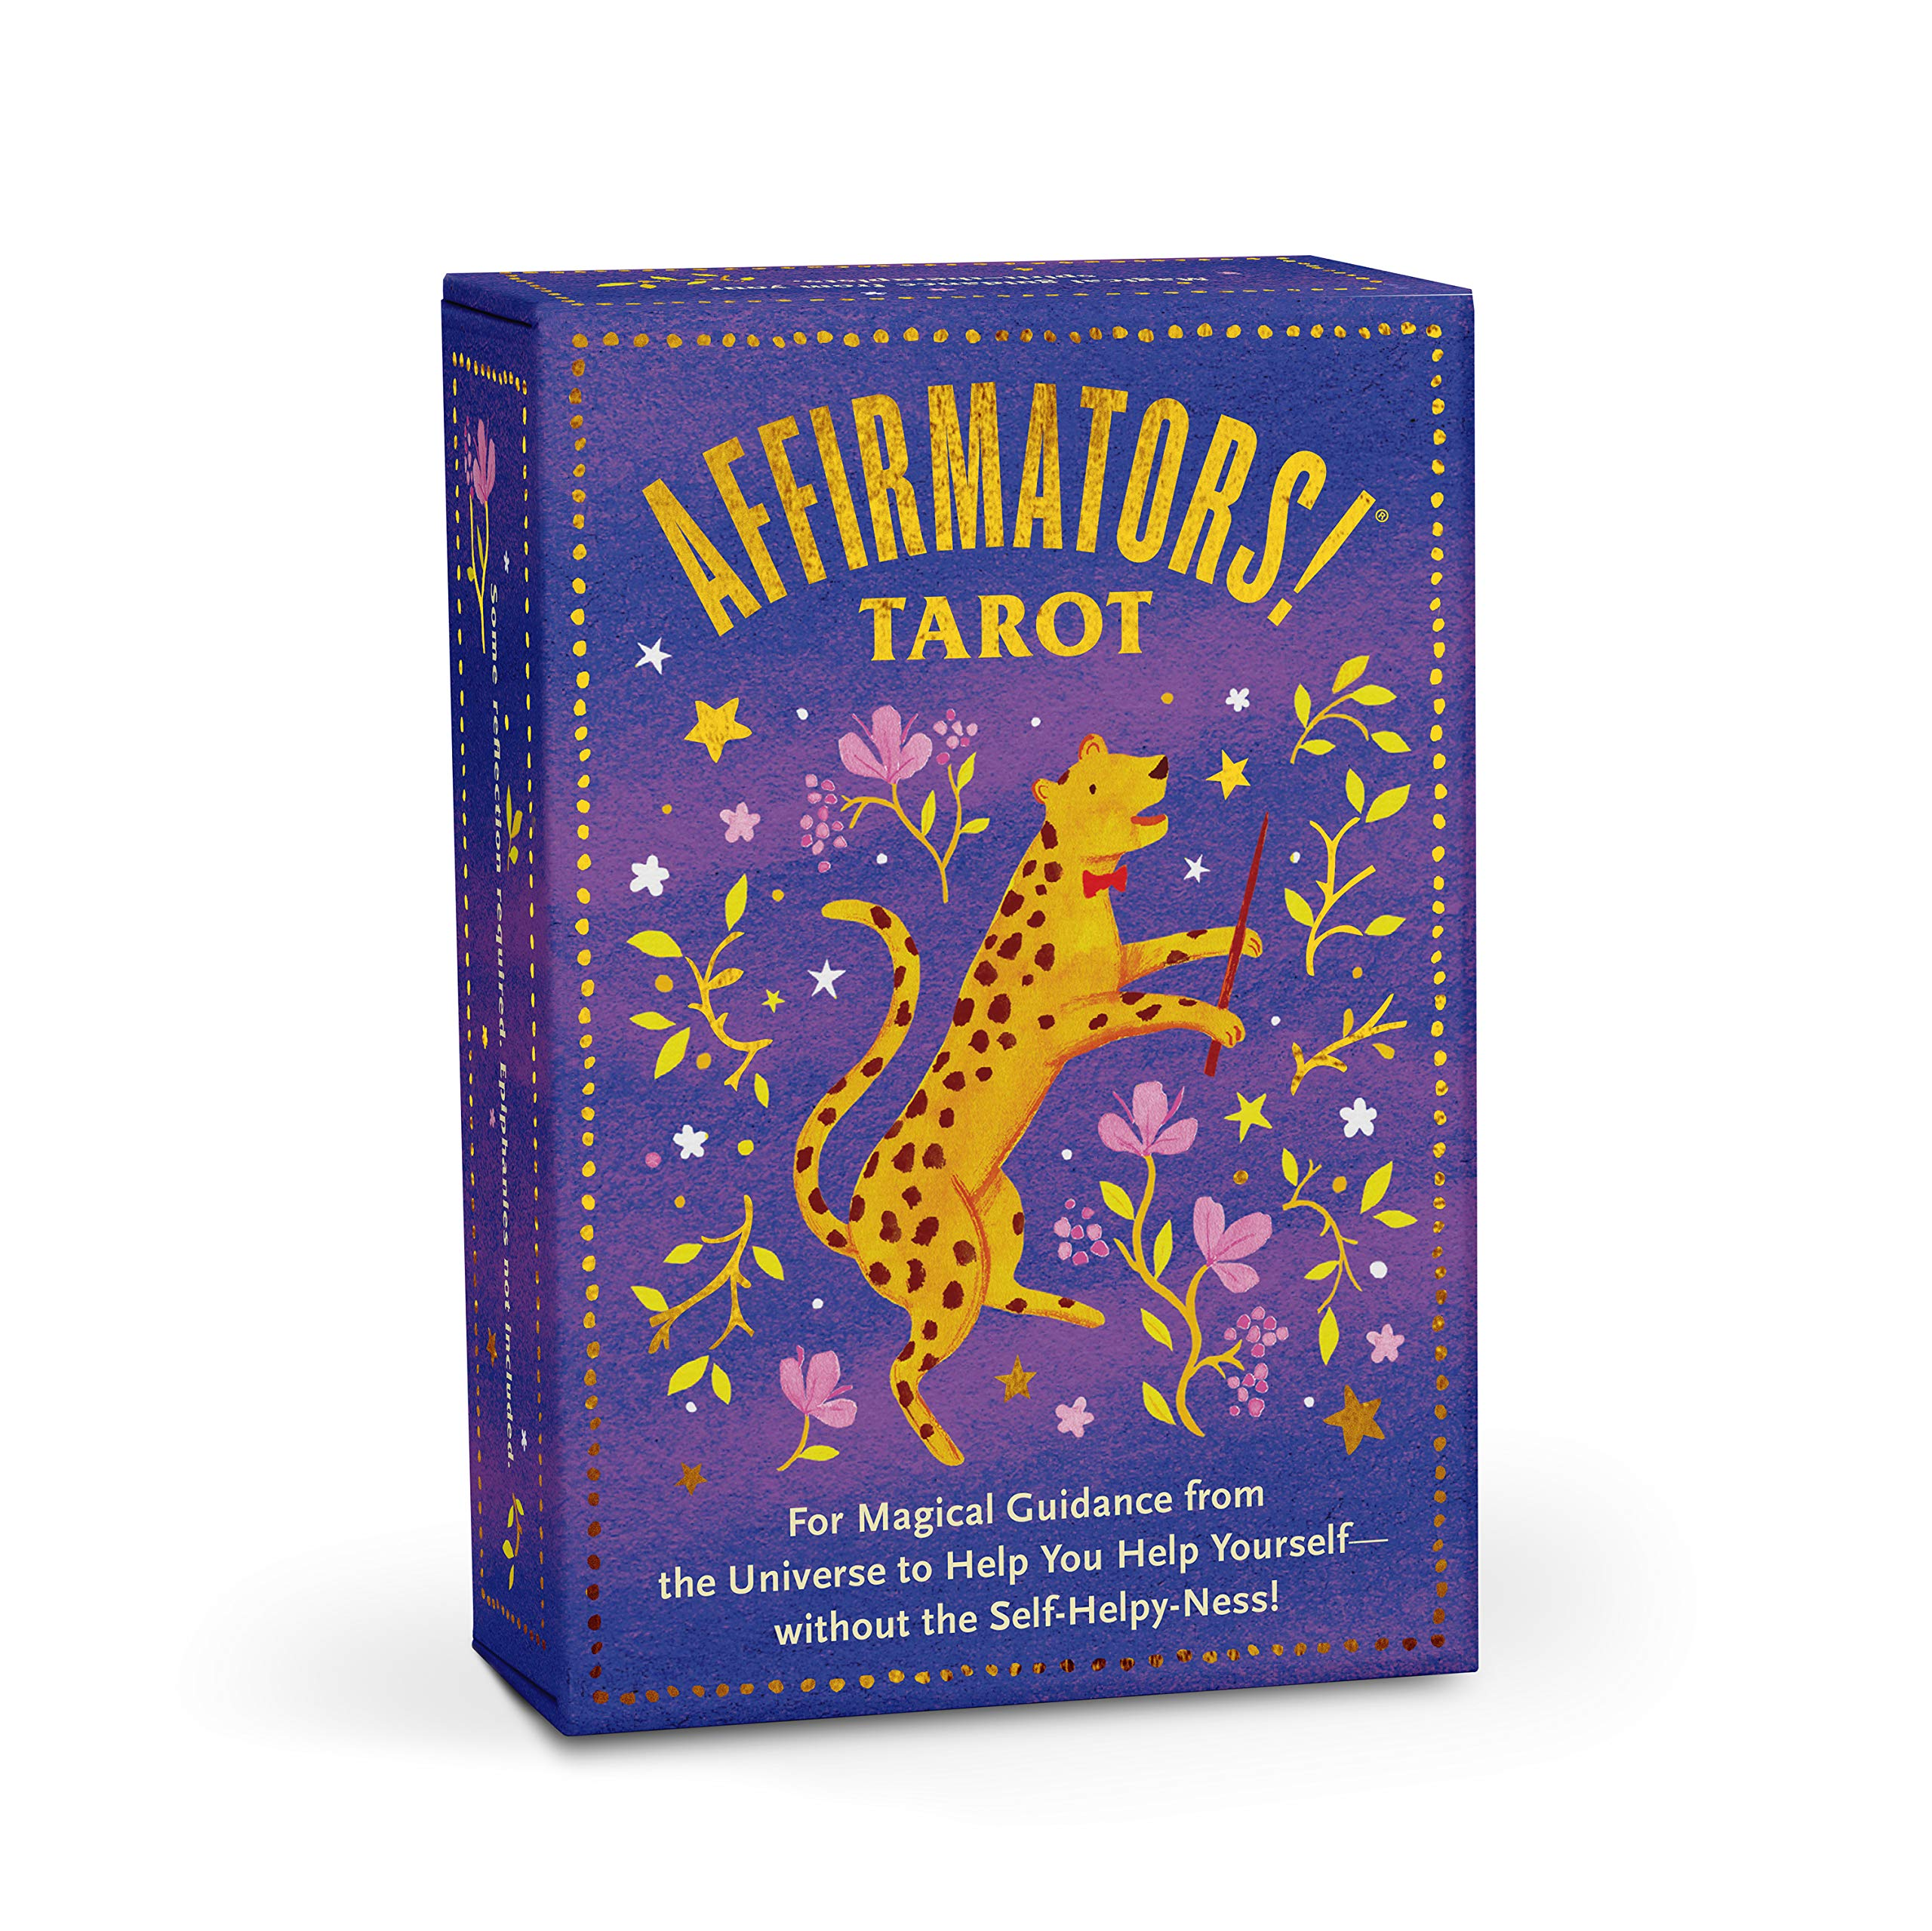 Affirmators! Tarot Deck: For Magical Guidance from the Universe to Help You Help Yourself - without the Self-Helpy-Ness! by Knock Knock